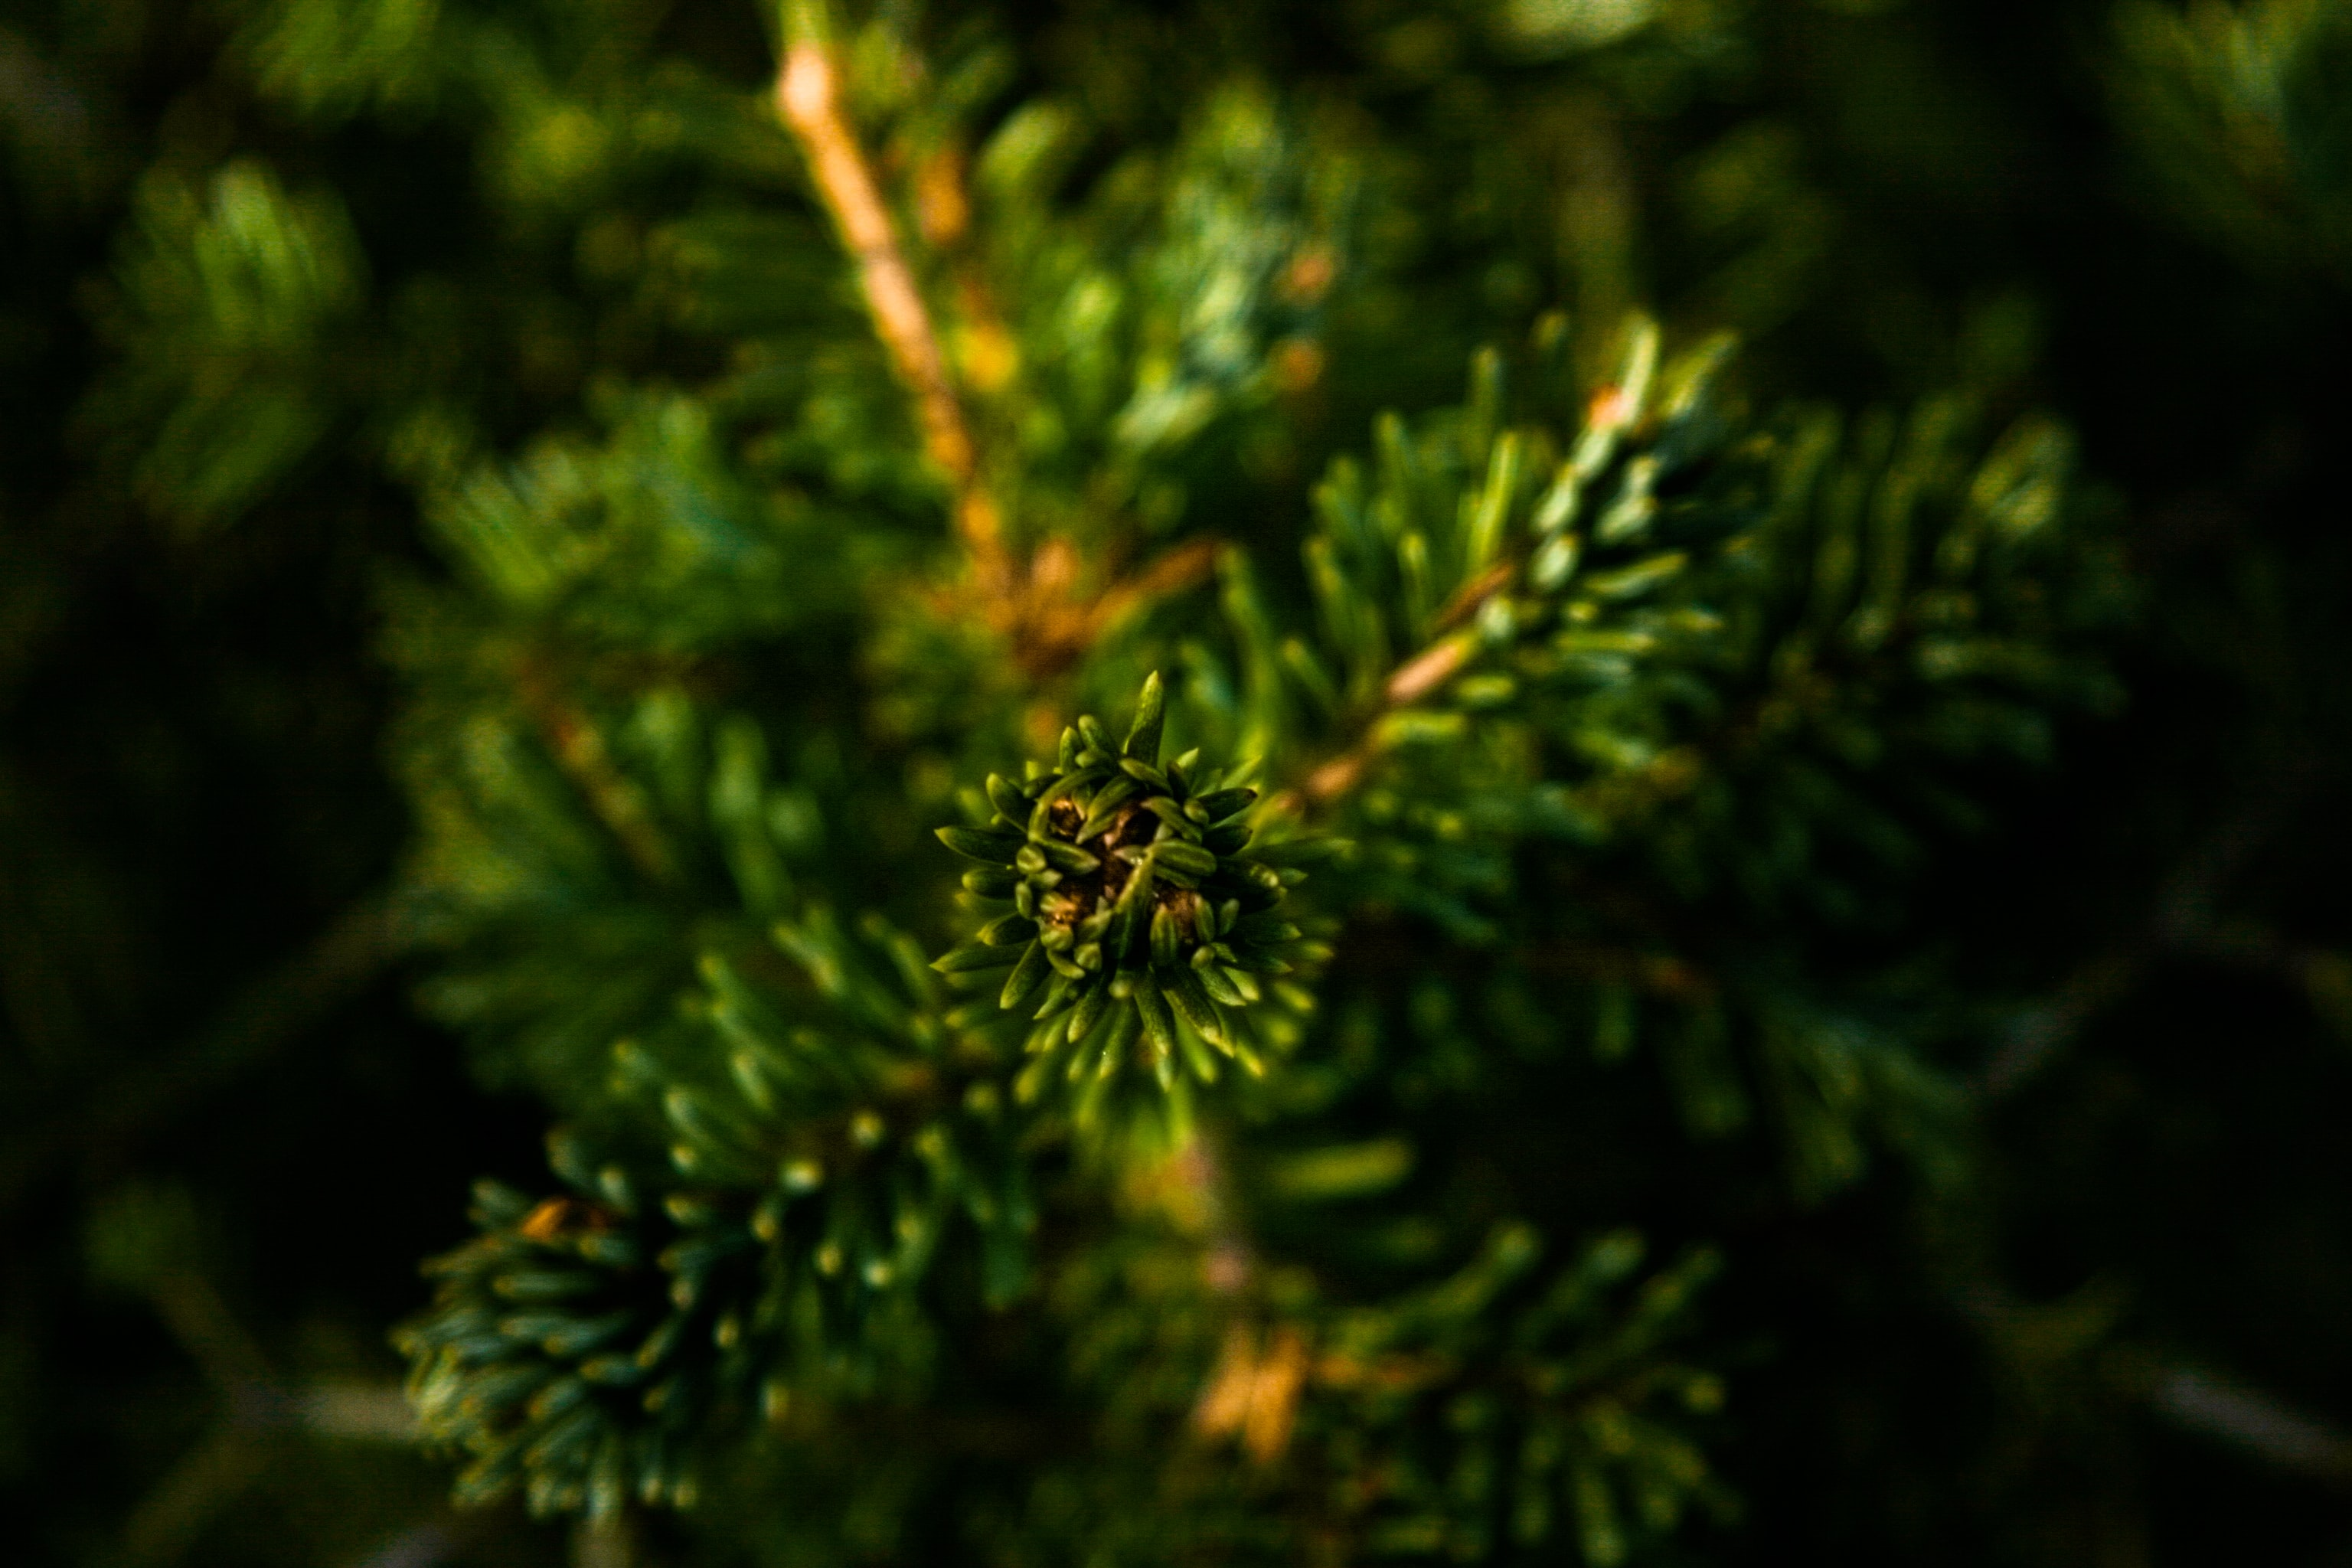 A macro shot of a lush green branch of a coniferous tree